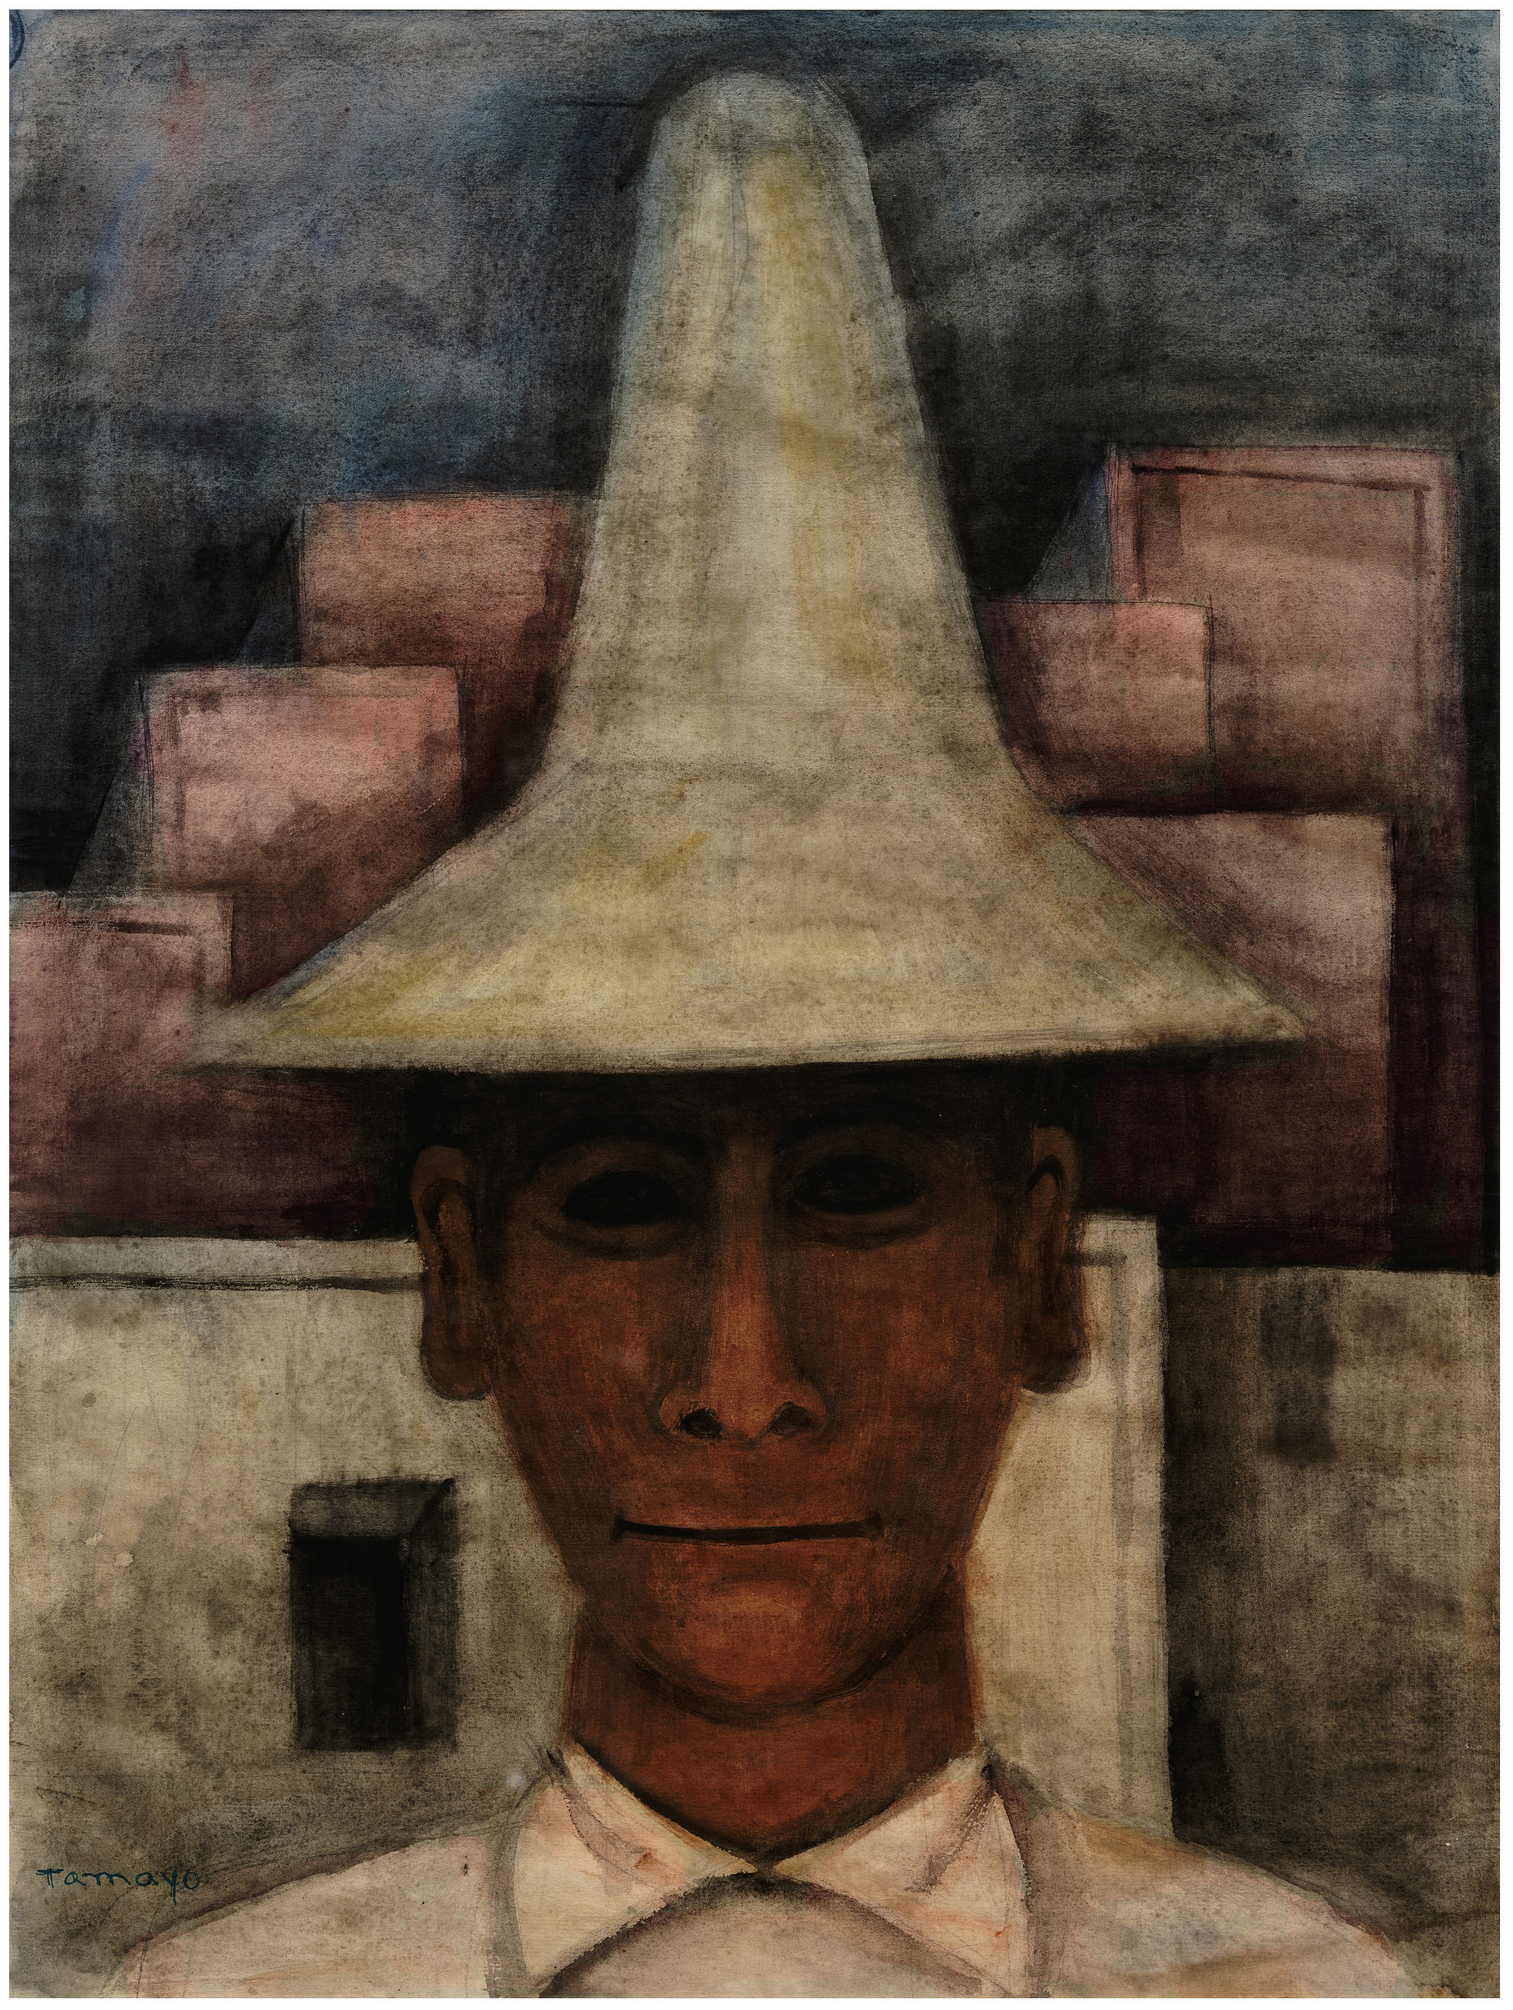 Rufino Tamayo, Man with Tall Hat (Hombre con sombrero alto), c. 1930, Los Angeles County Museum of Art, the Bernard and Edith Lewin Collection of Mexican Art, © 2019 Tamayo Heirs/Mexico/Licensed by VAGA at Artists Rights Society (ARS), NY, photo © Museum Associates/LACMA